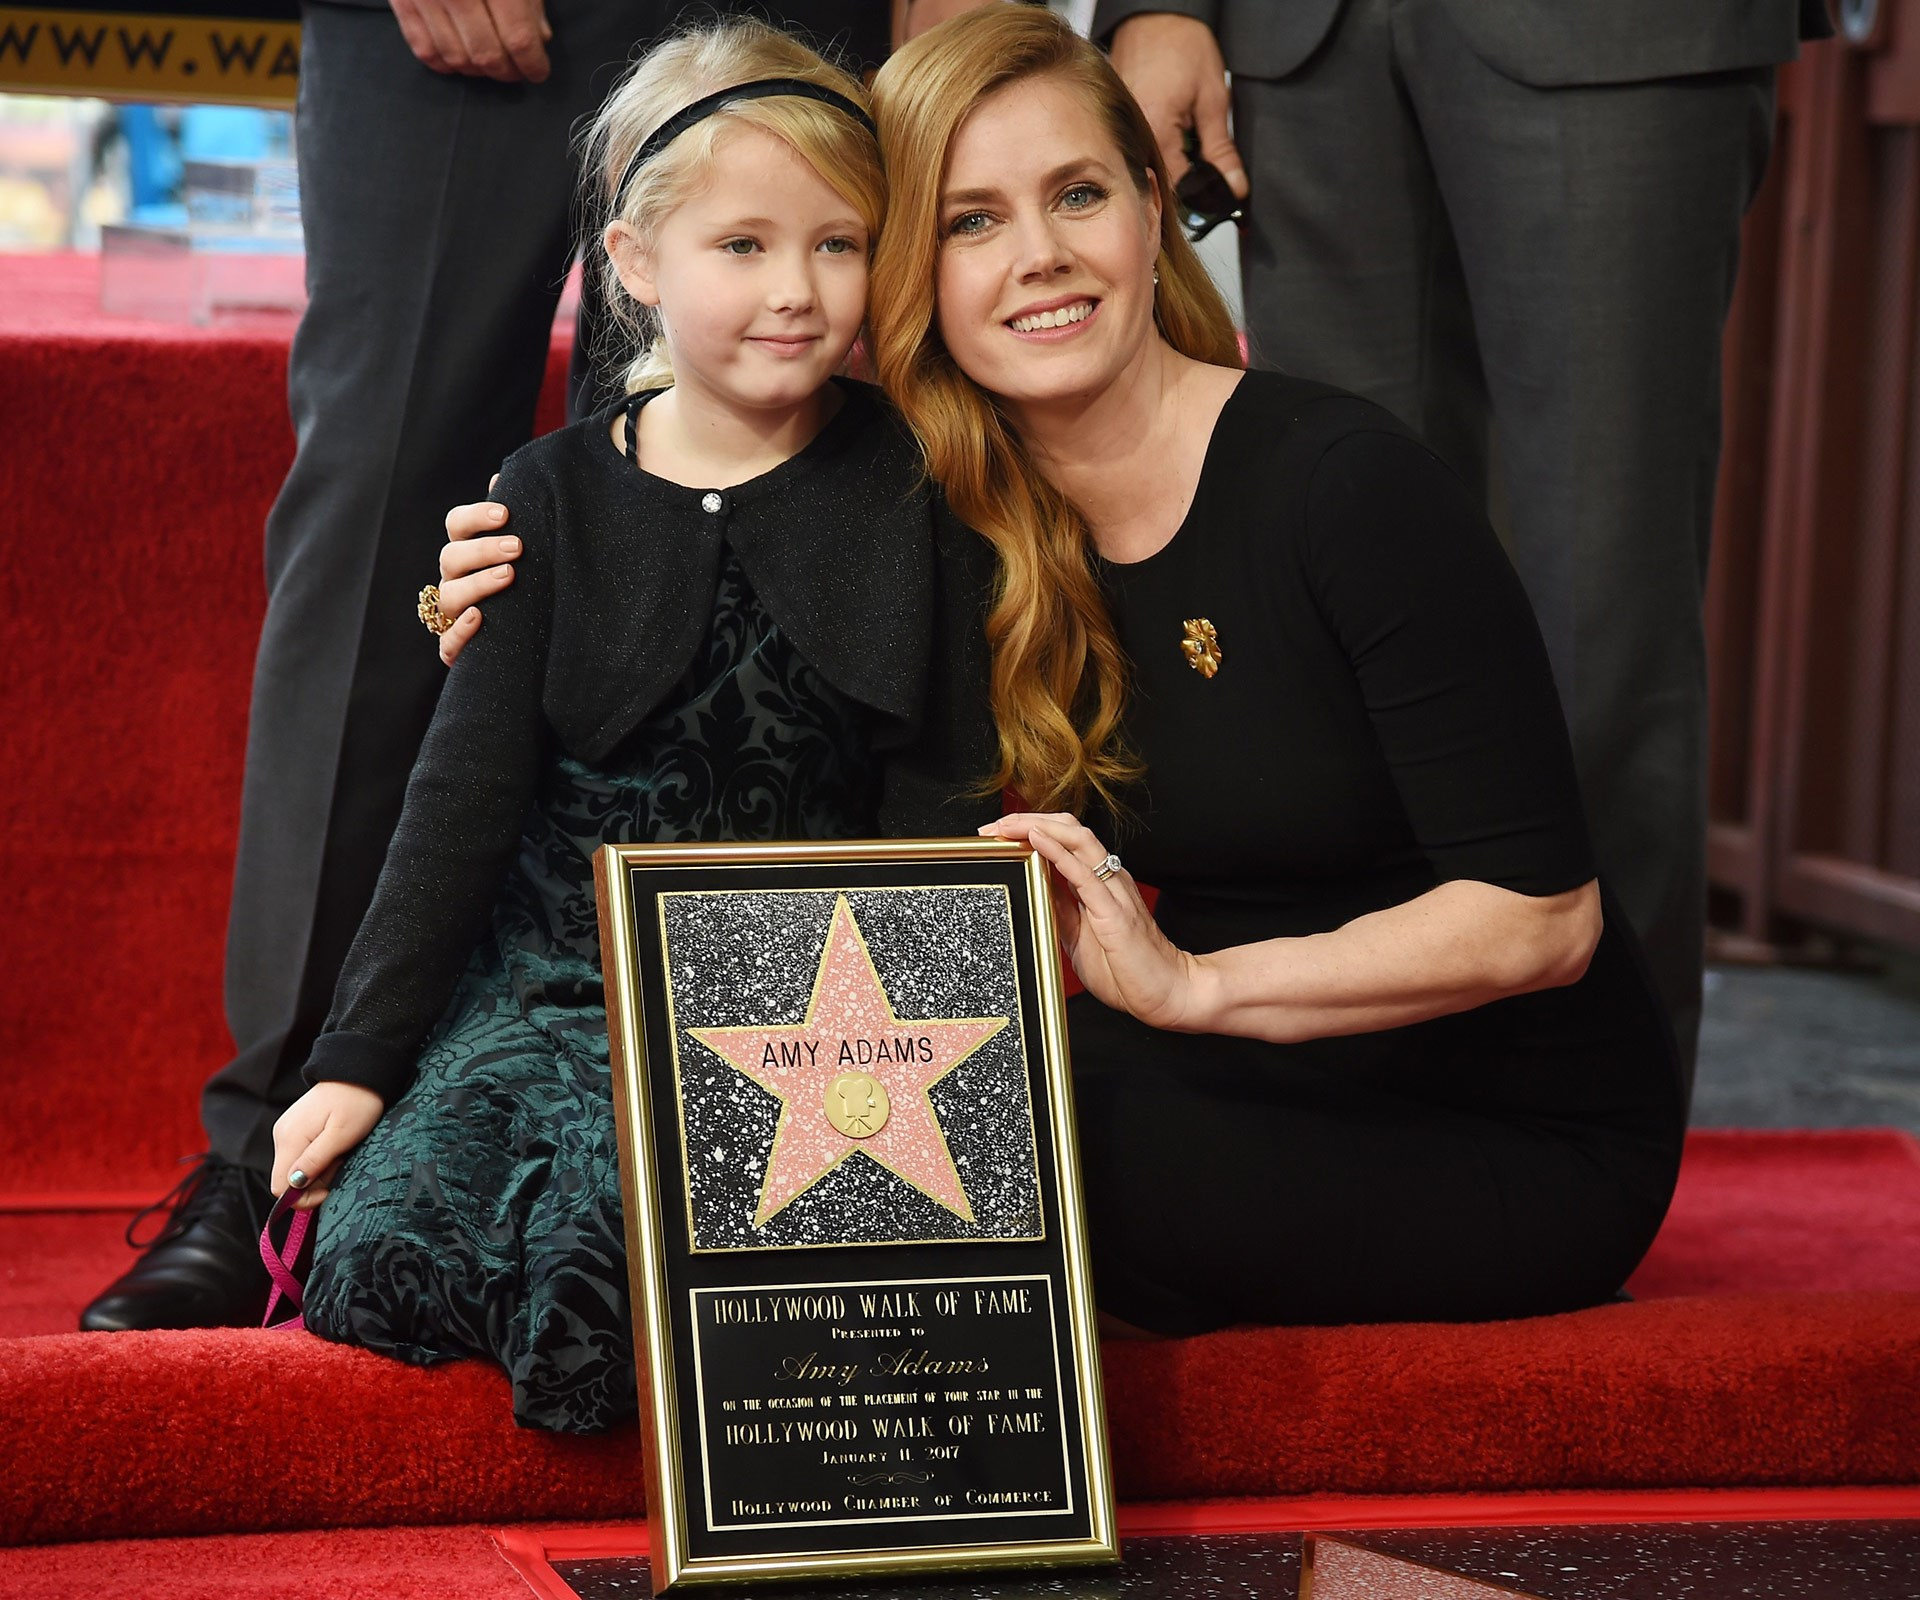 Amy Adams' daughter Aviana this week made her public debut as the Arrivals actress received a coveted star on the Hollywood Walk of Fame.